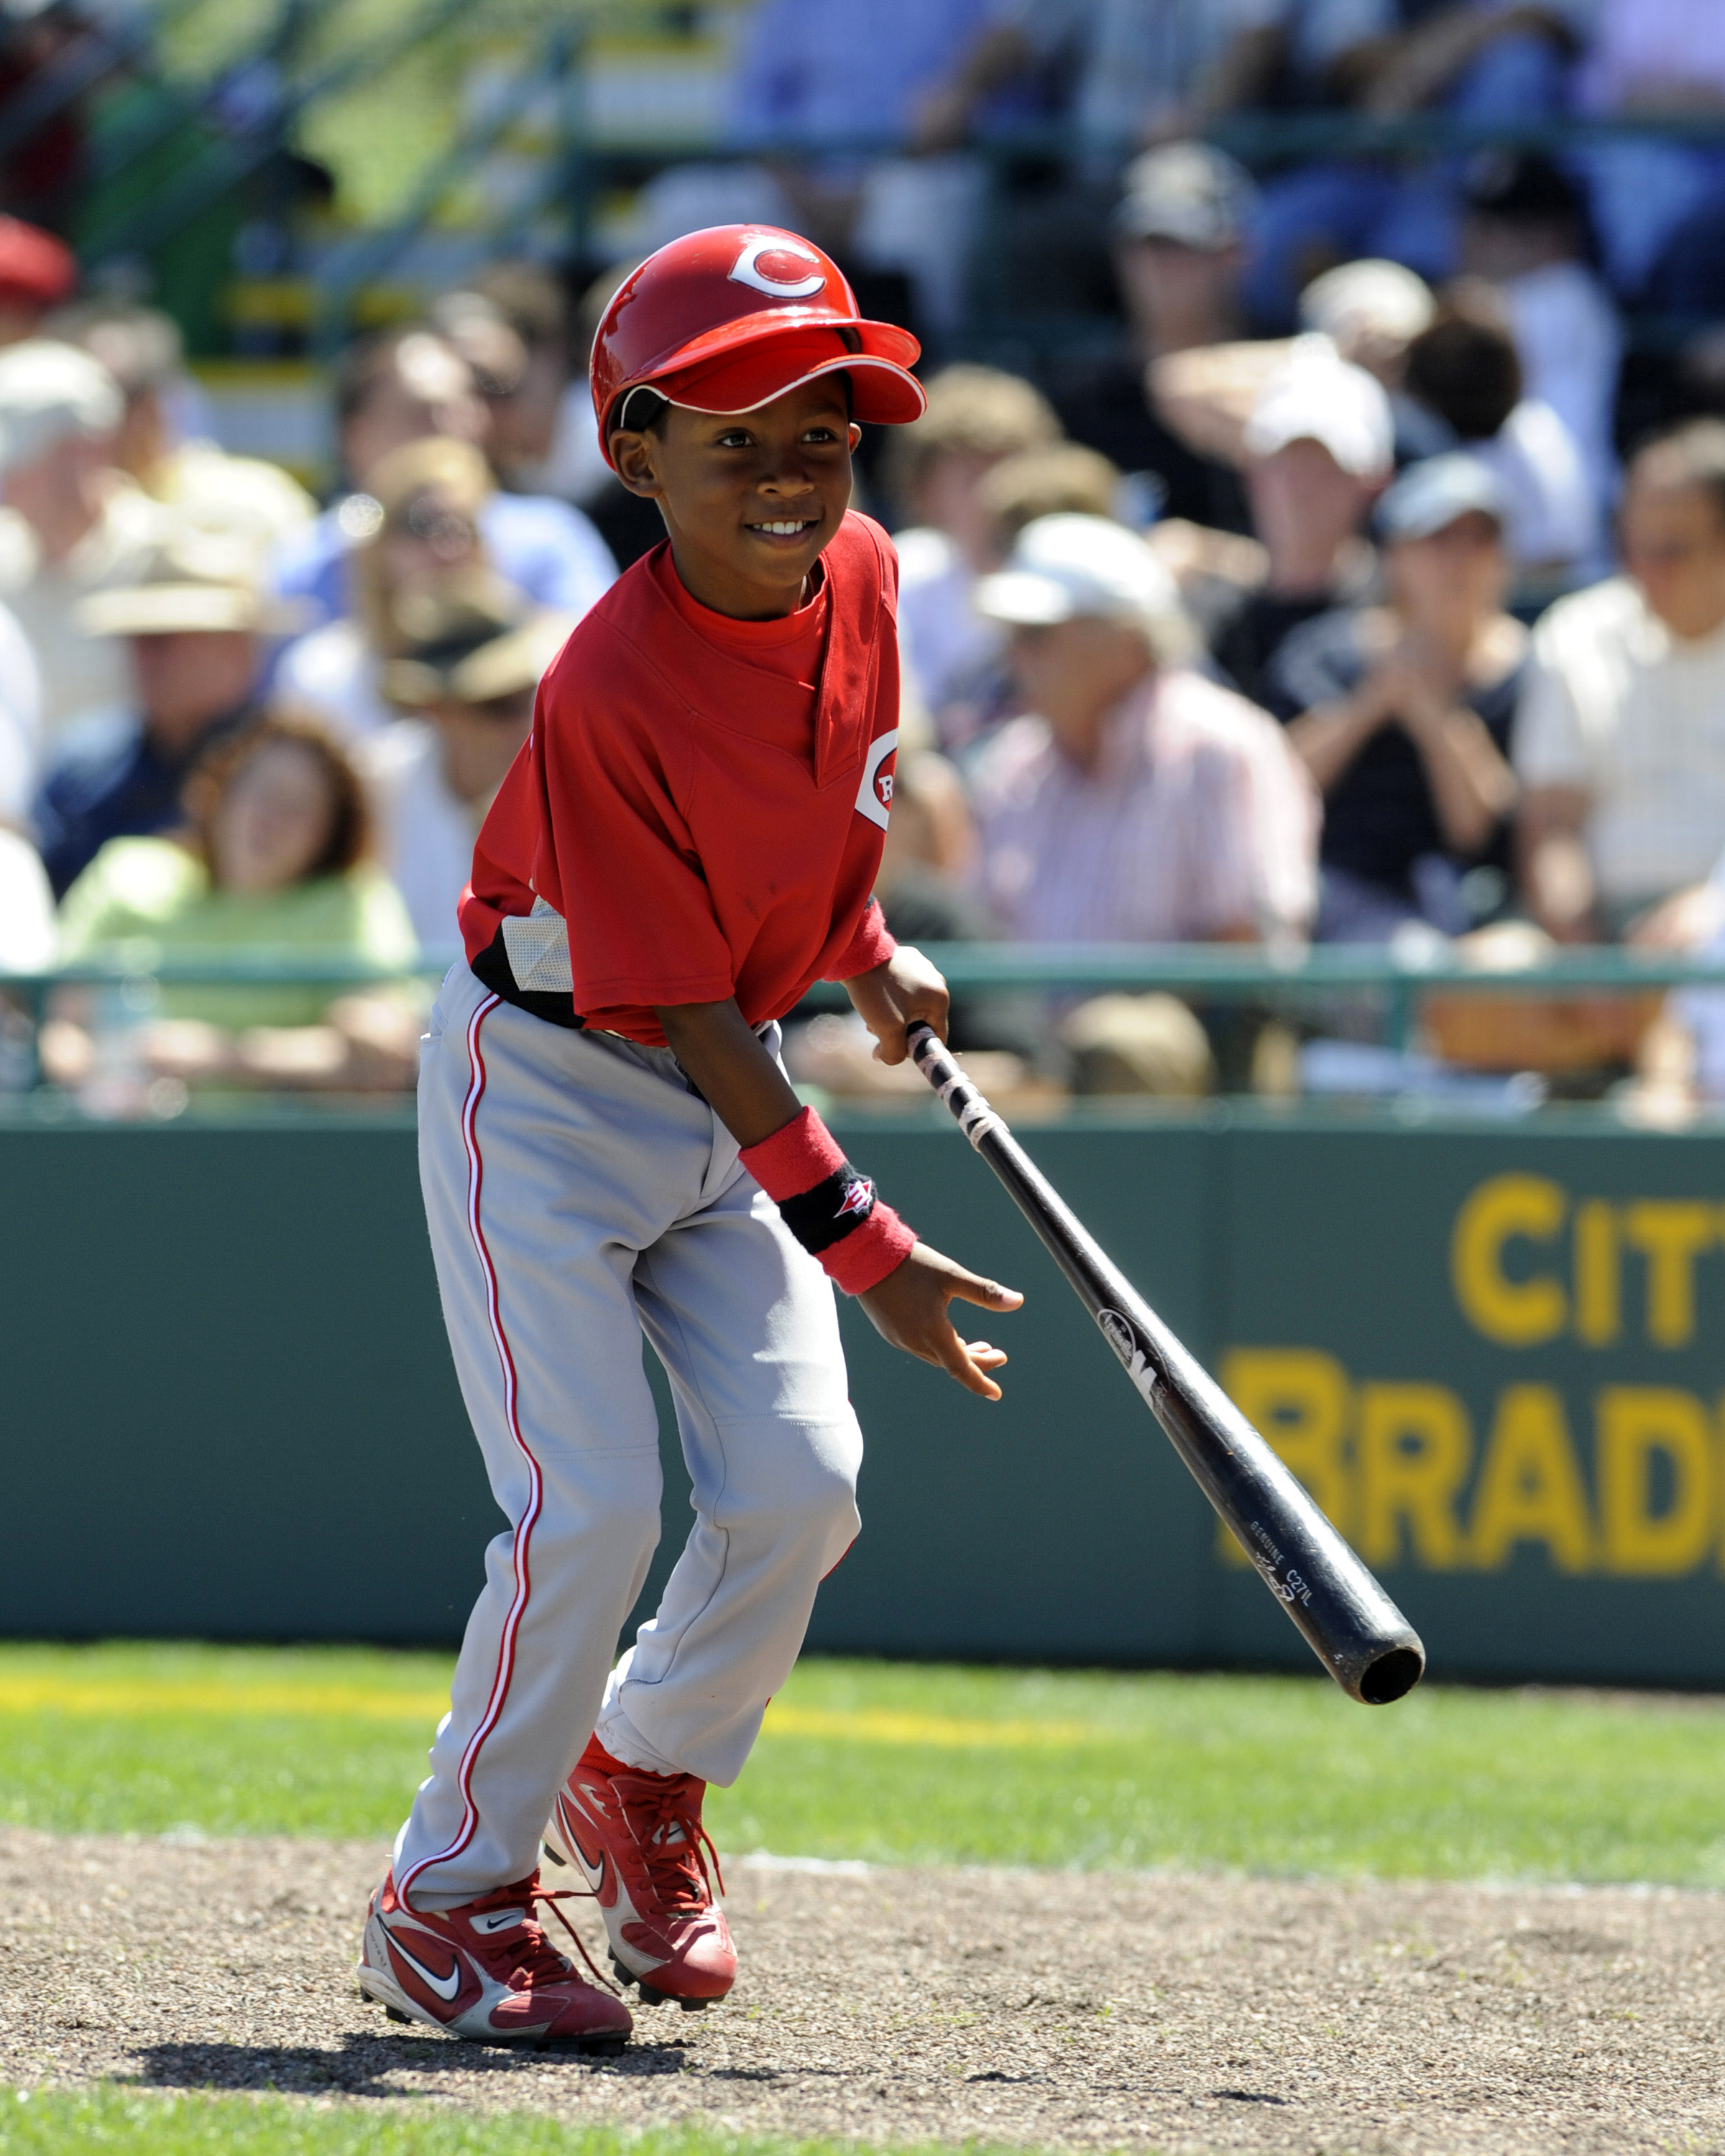 BRADENTON, FL - MARCH 21: Nine-year-old batboy Darren Baker of the Cincinnati Reds retrieves a bat against the Pittsburgh Pirates March 21, 2008 at McKechnie Field in Bradenton, Florida.  Darren is the son of manager Dusty Baker. (Photo by Al Messerschmid